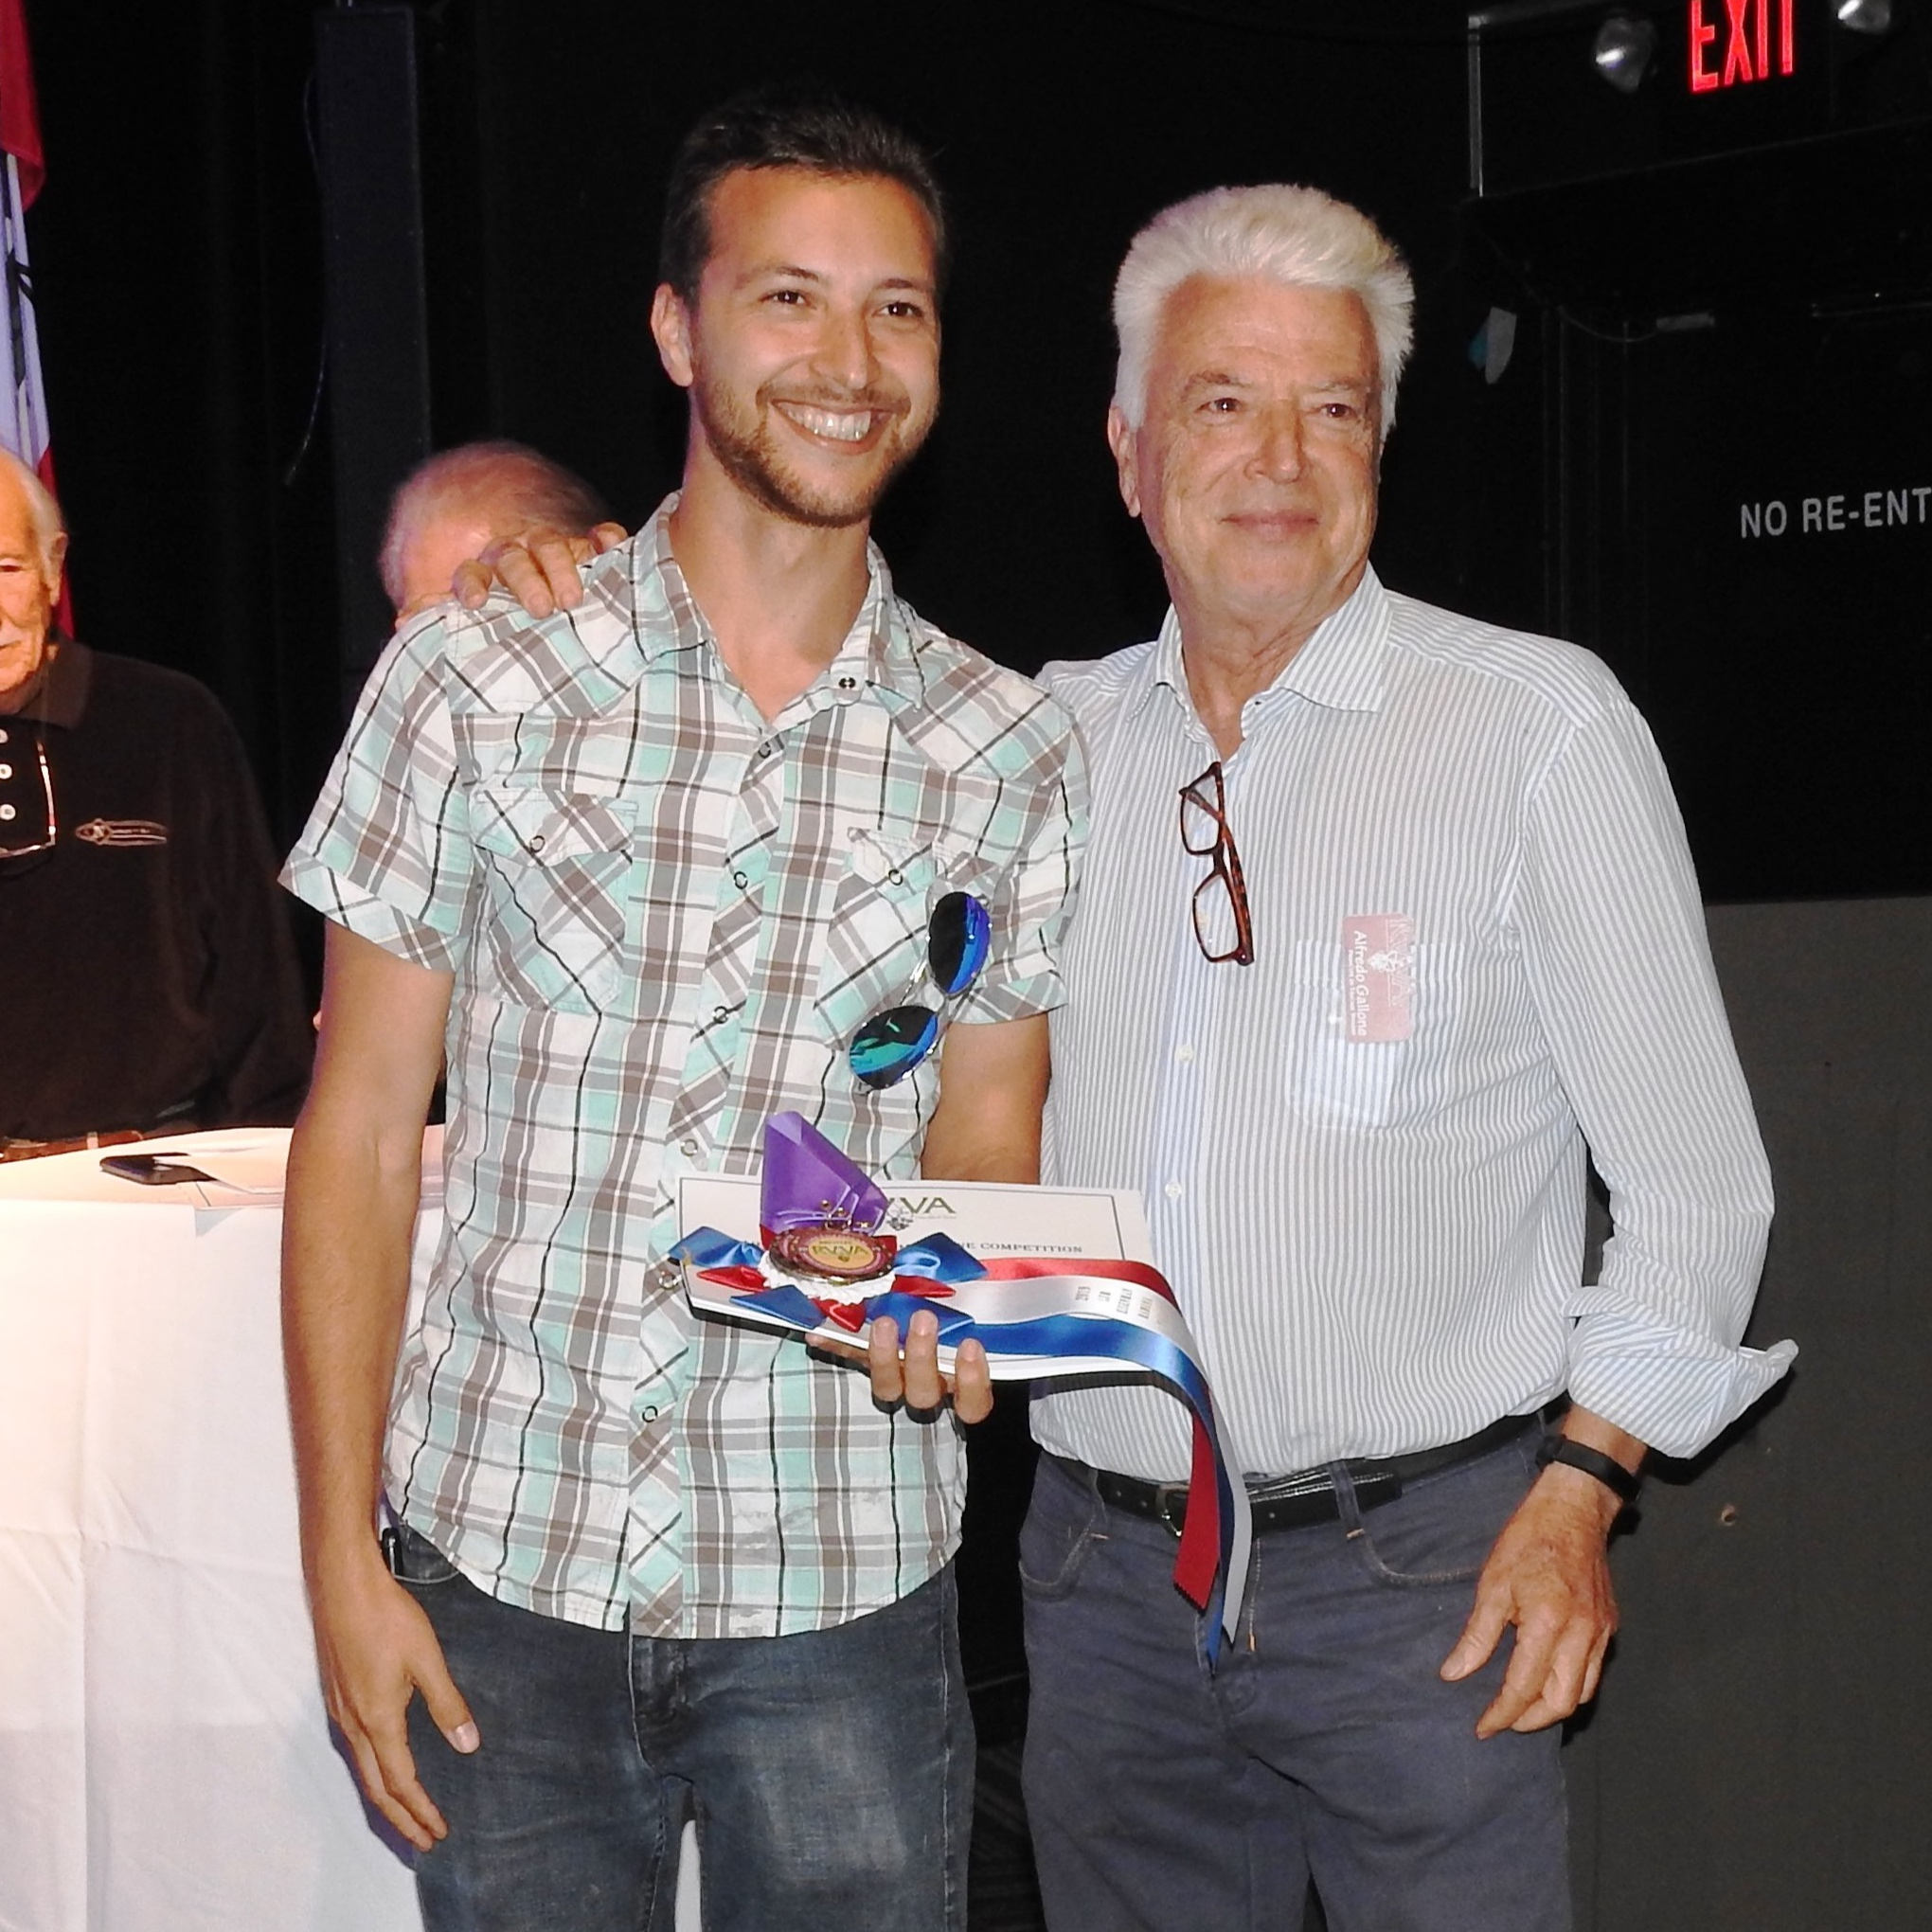 Alfredo Gallone of Principe de tricase Winery, right, pictured with his son Alessandro Gallone, won best of show in the commercial winemaker category.   Photo Courtesy of Ramona Valley Vineyard Association